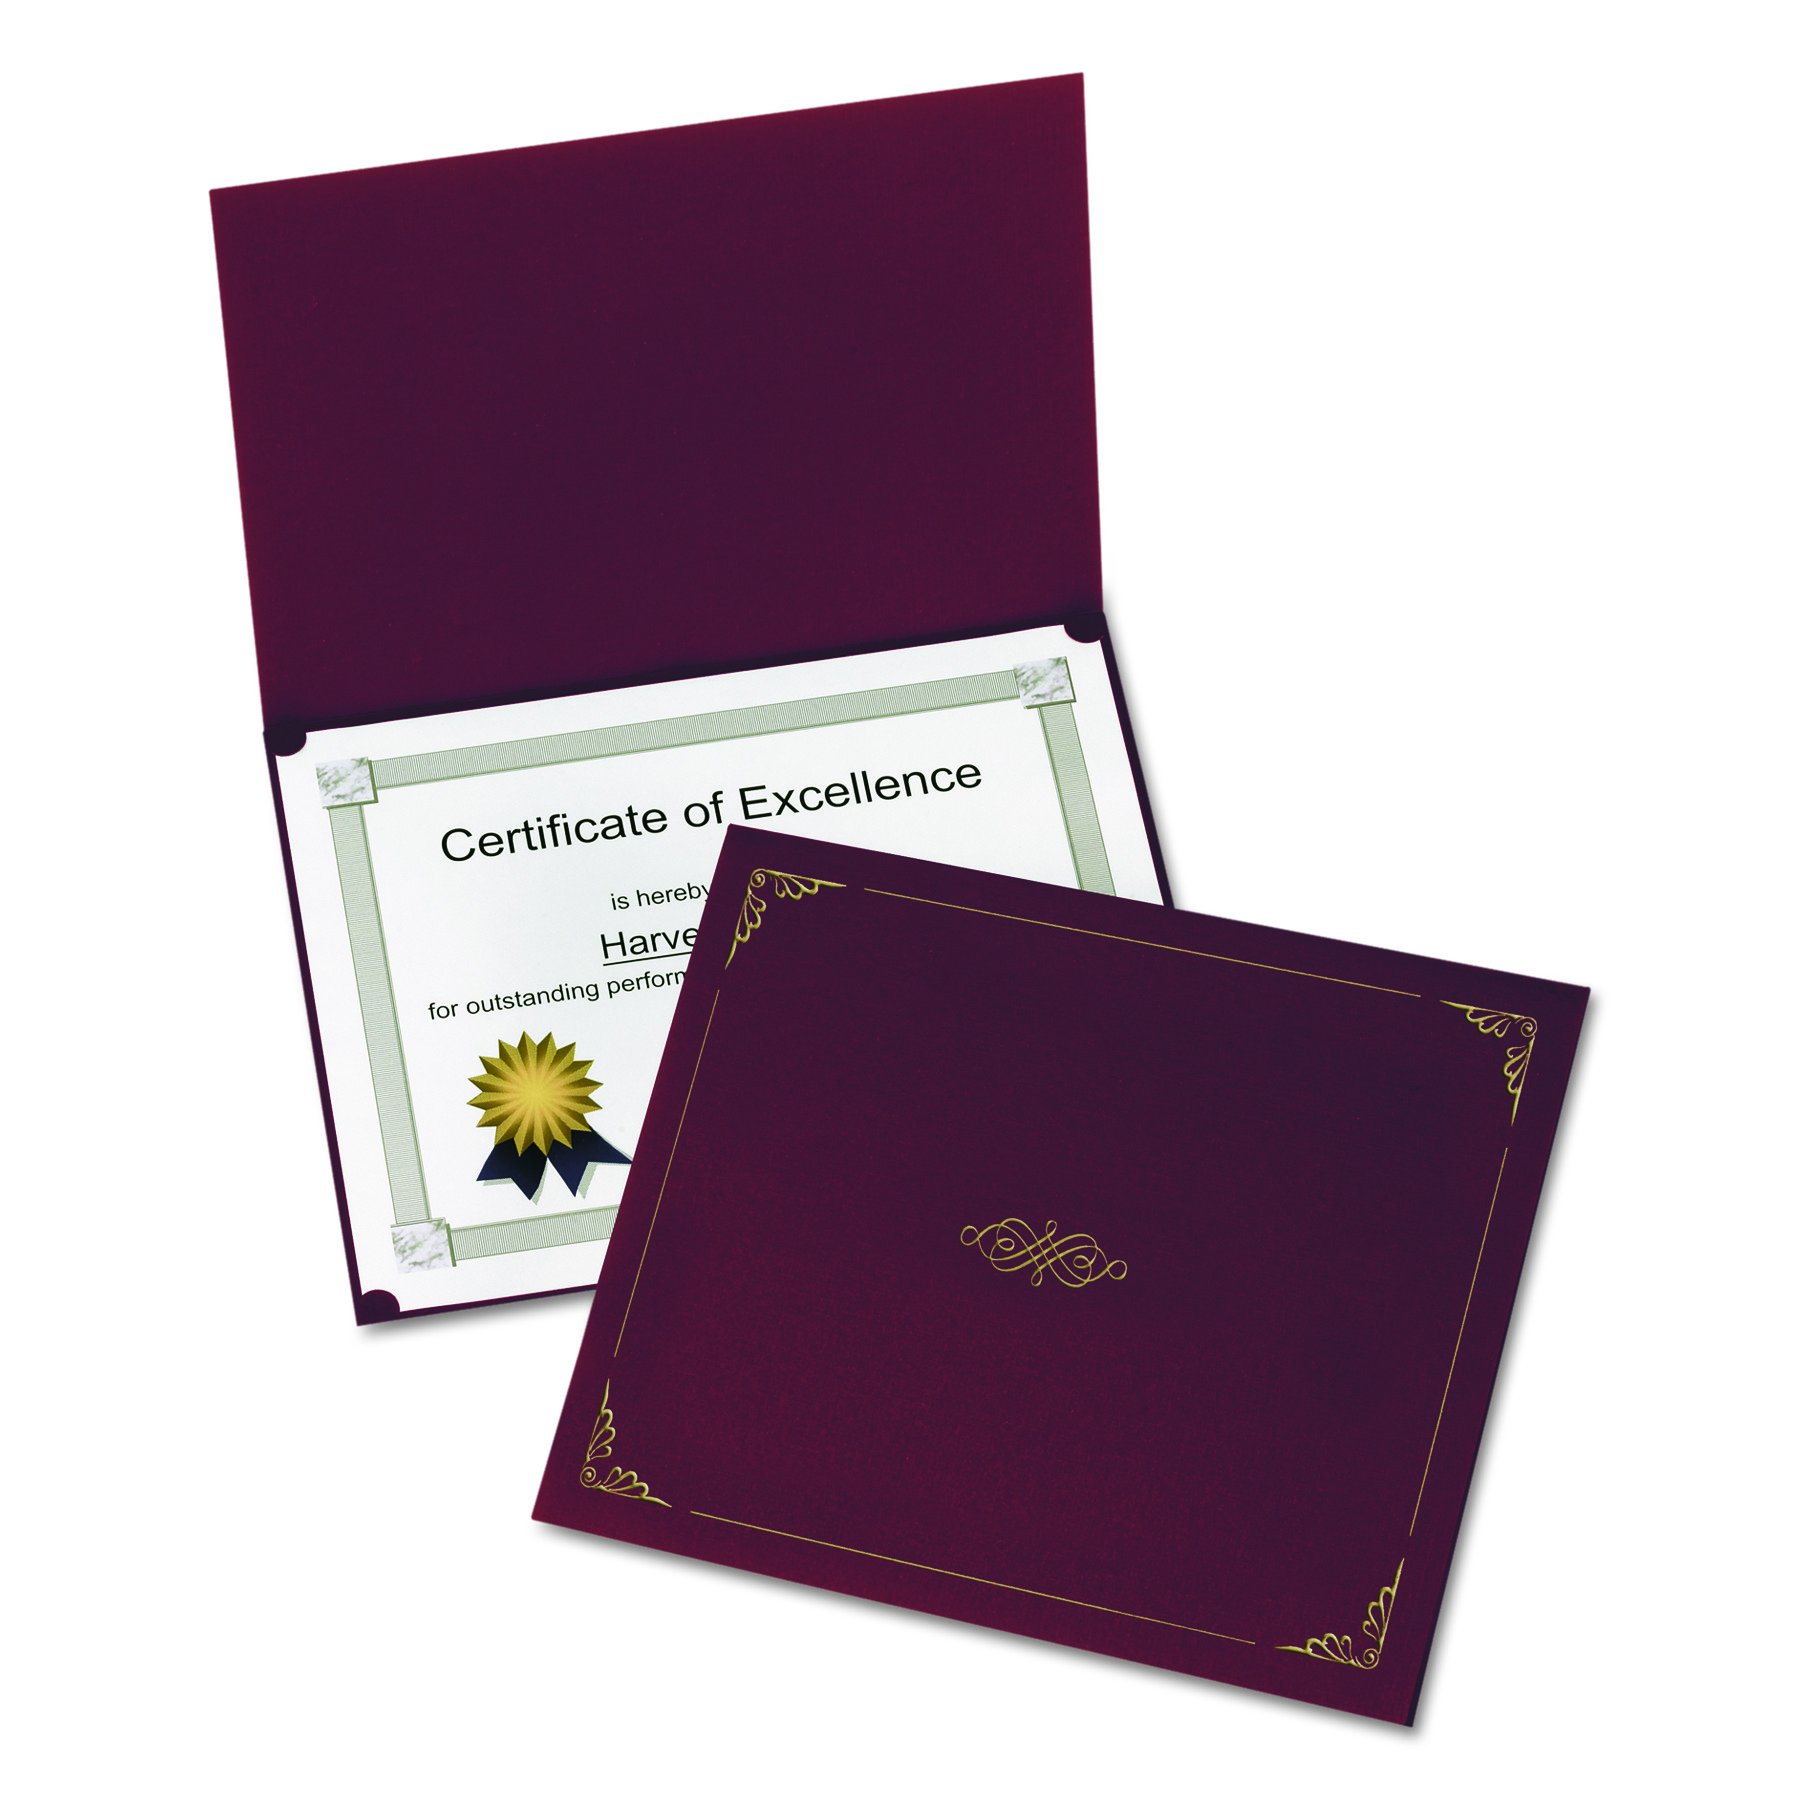 Oxford Certificate Holders, Letter Size, Burgundy, 5 per Pack5 (29900585BGD)